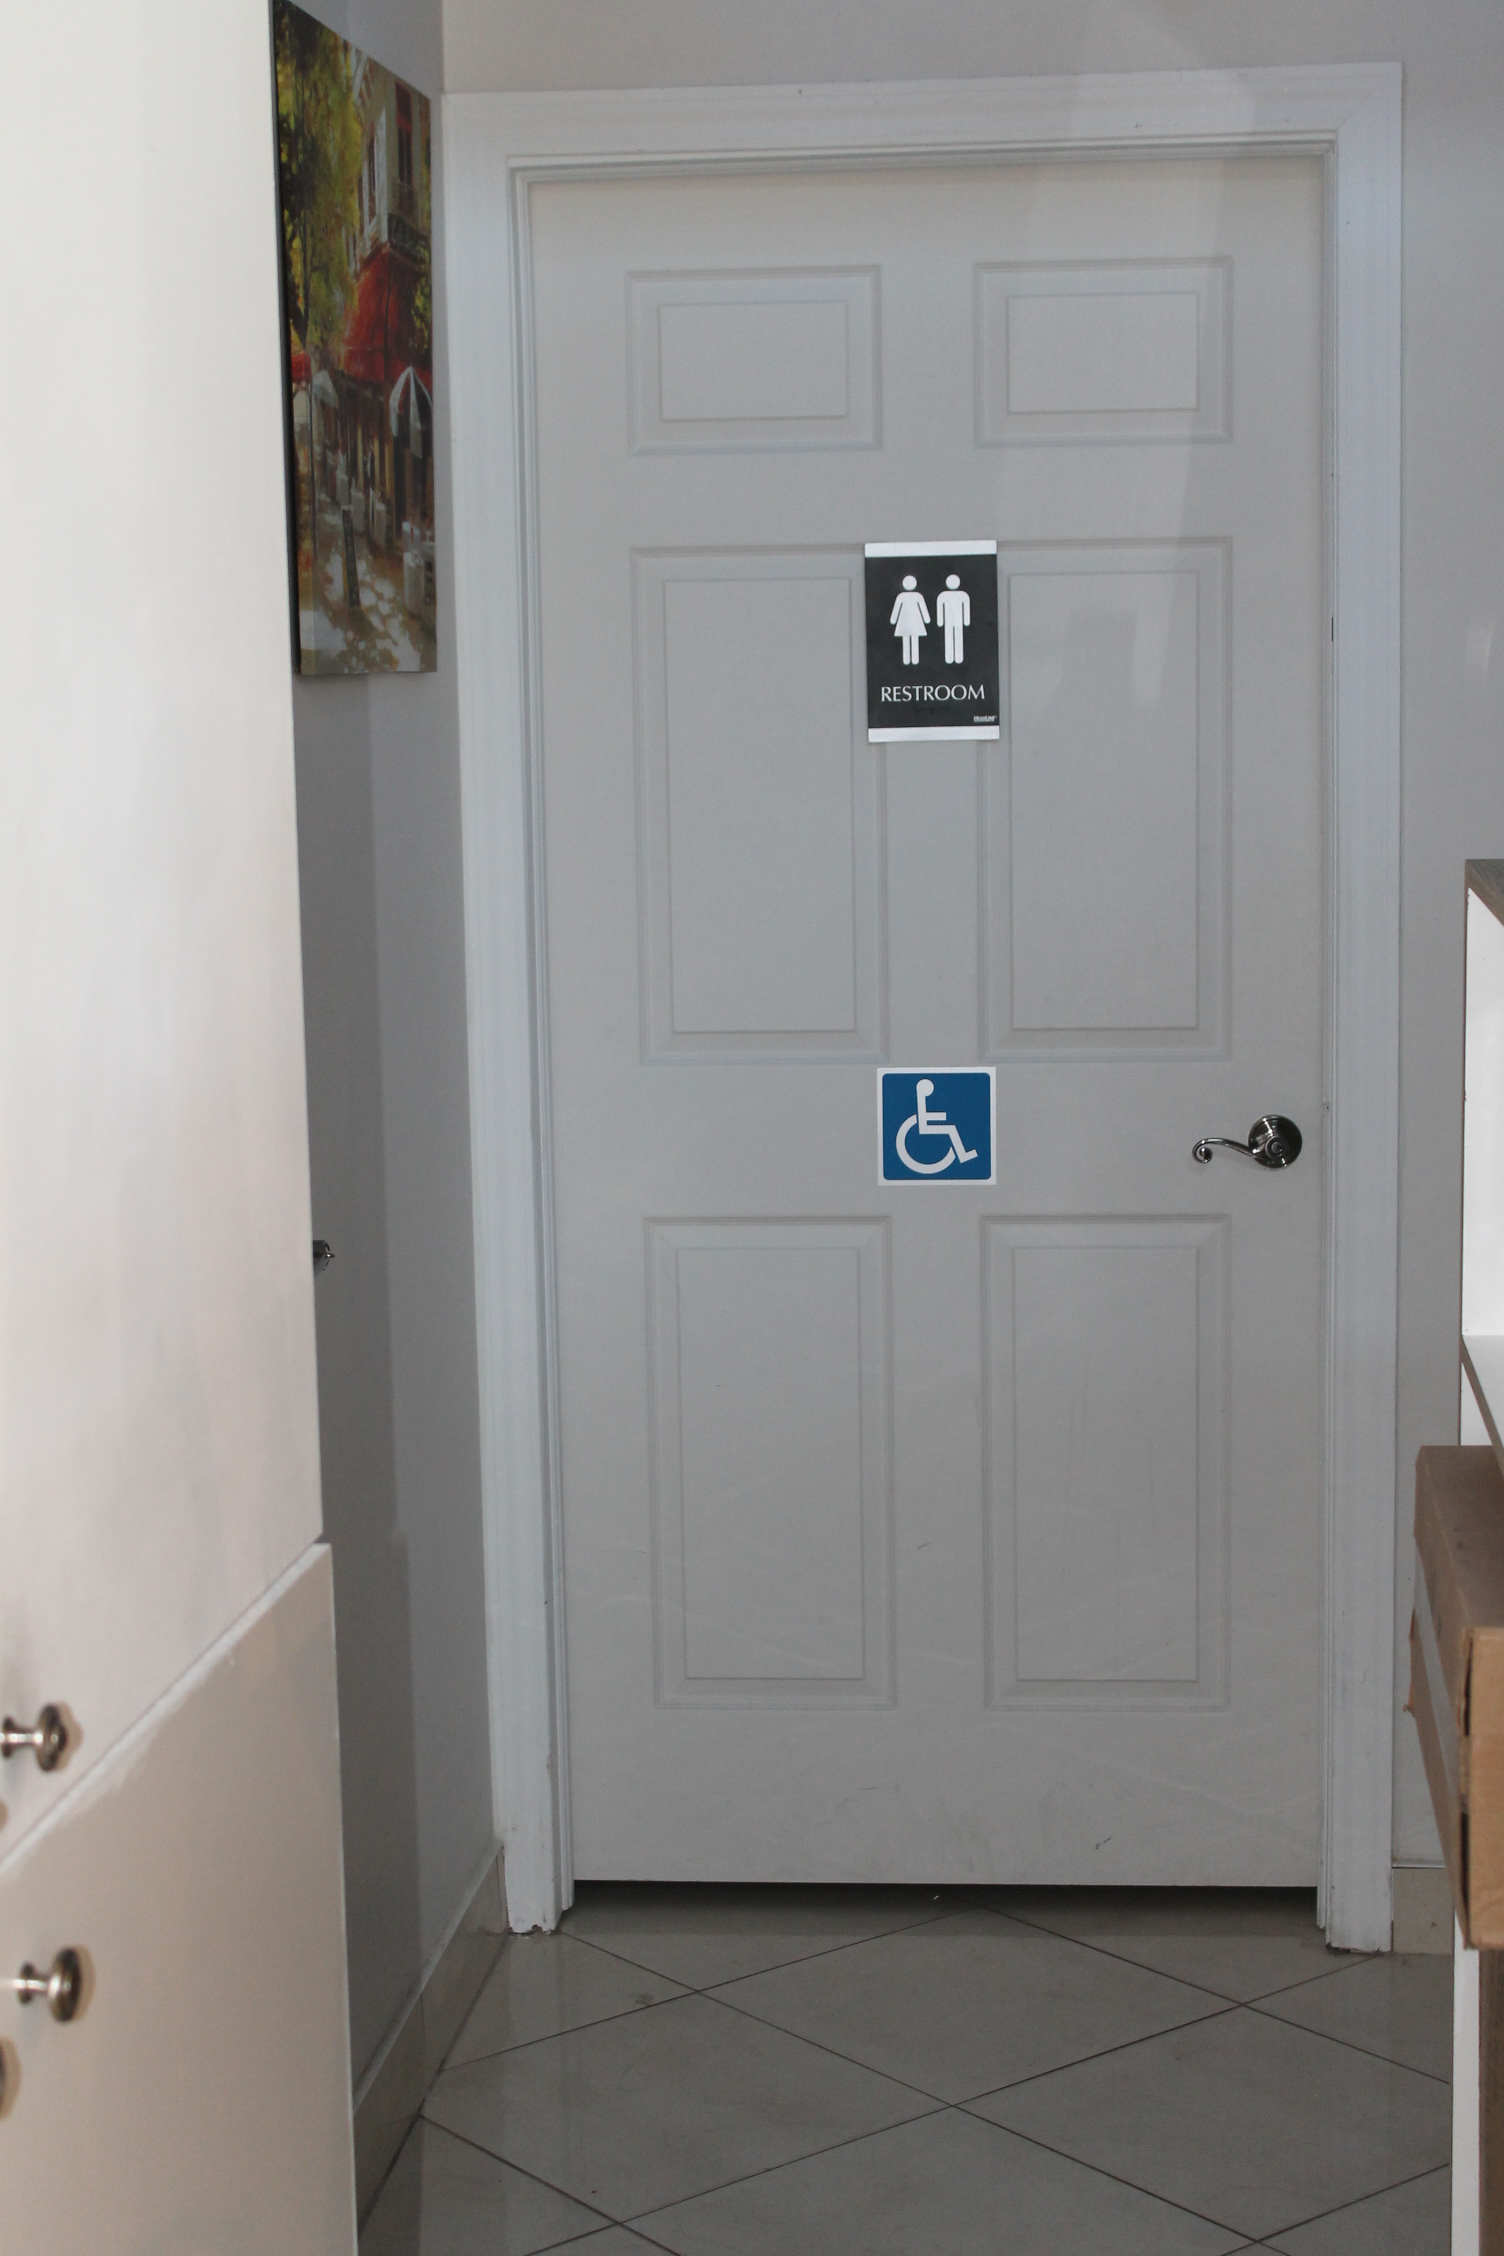 Picture of hallway to accessible washroom.